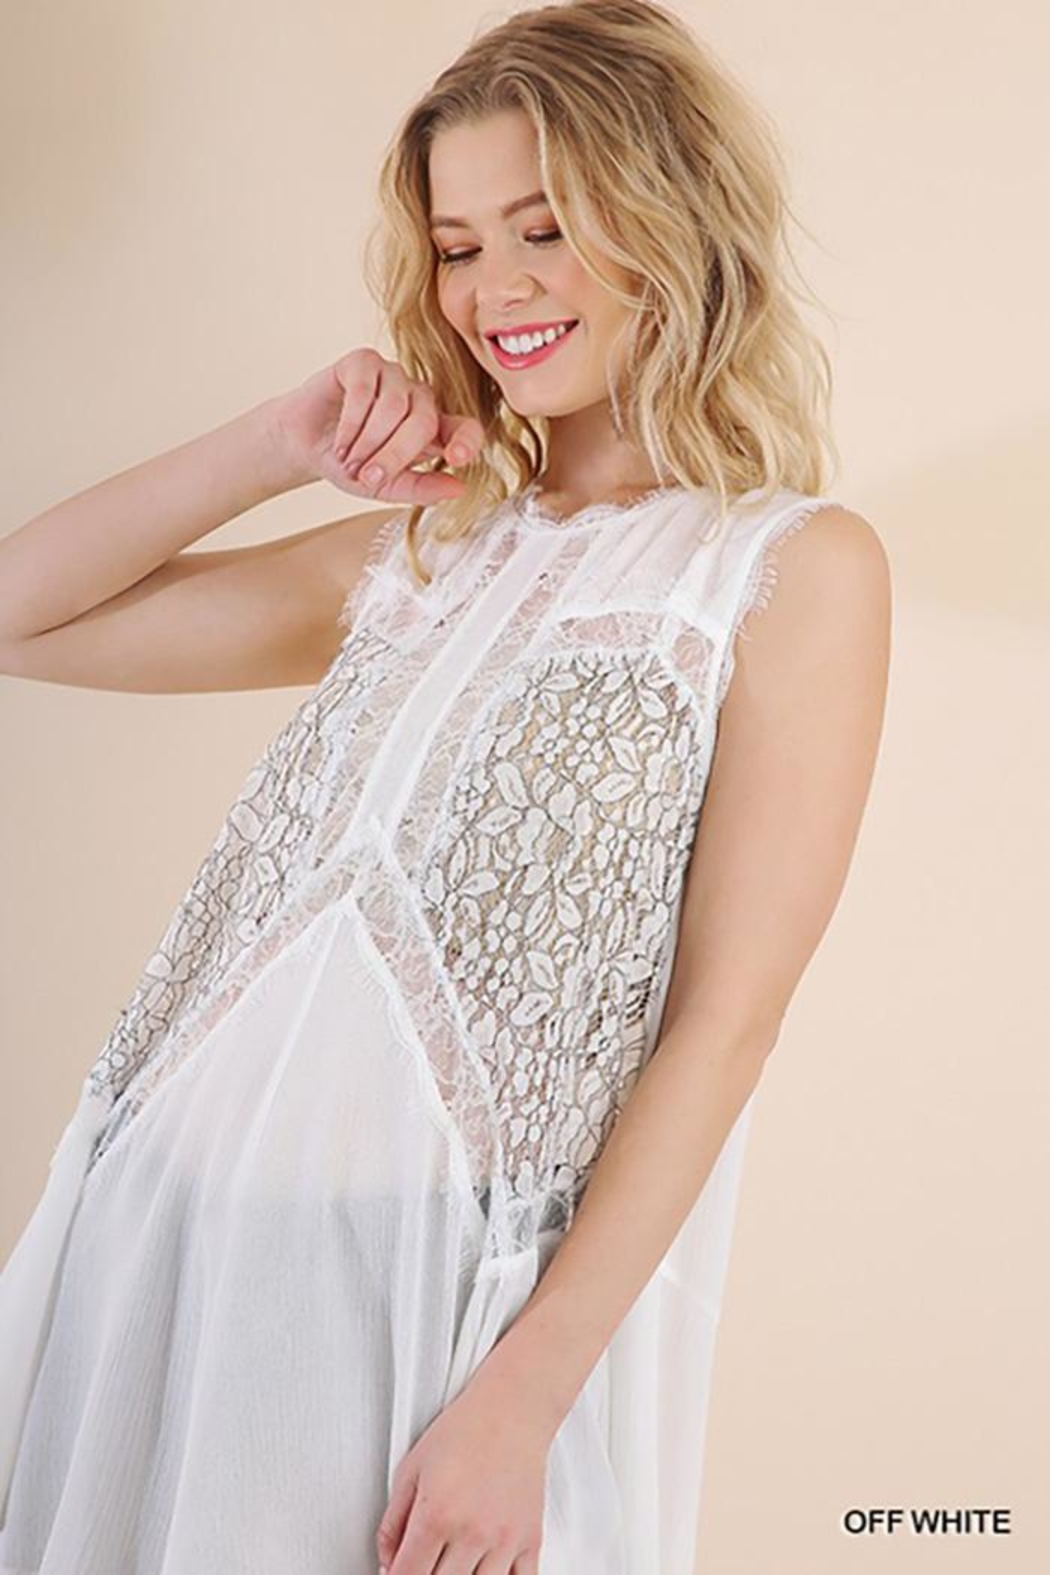 Gigio/BluHeaven Sleeveless Sheer Lace Tunic Top - Main Image